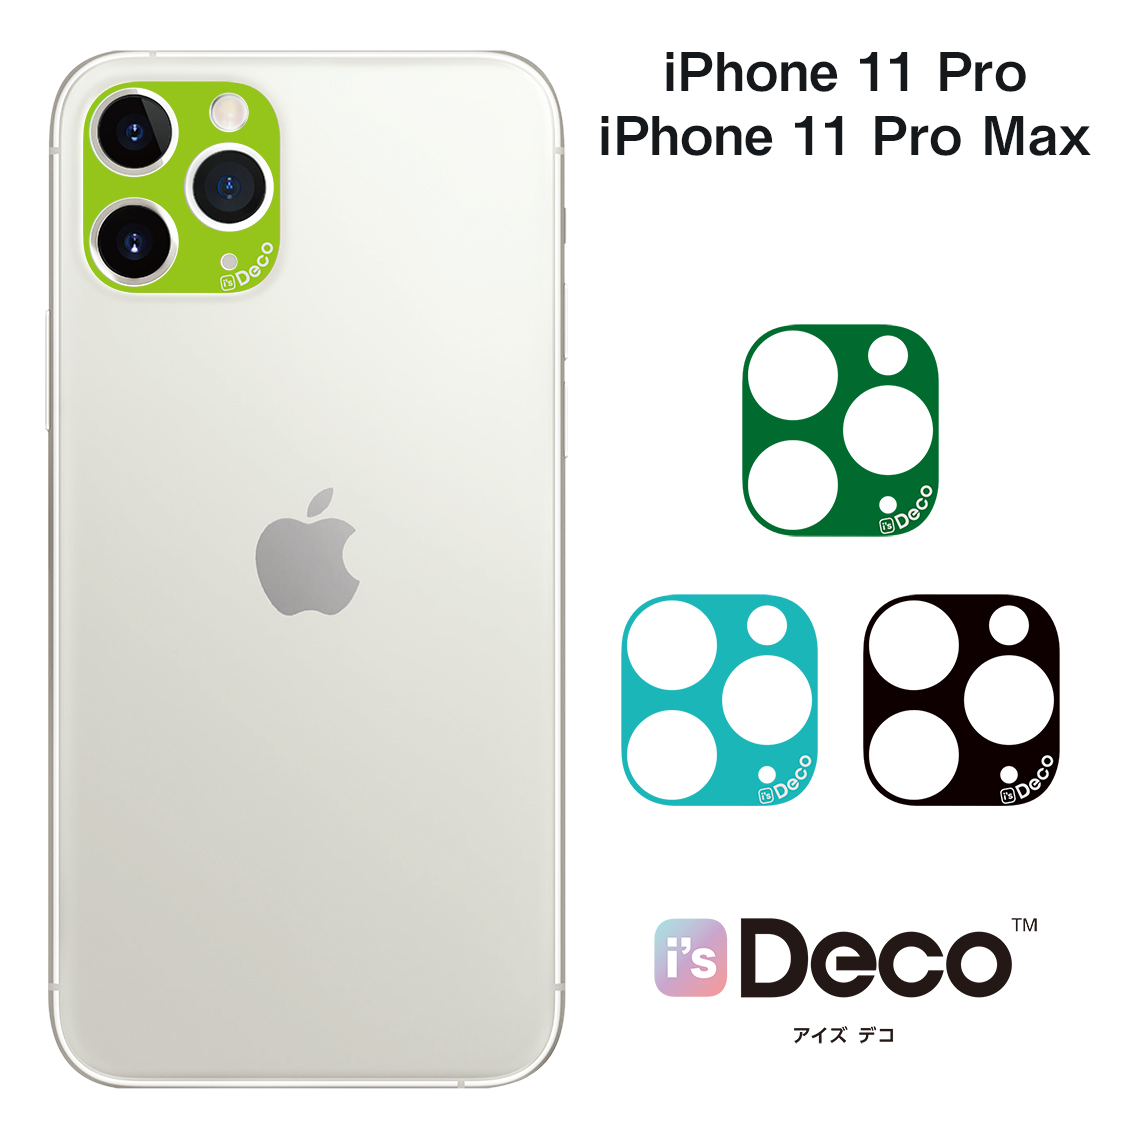 iPhone 11 Pro/11 Pro Max i's Deco  [STANDARD COLOR (B05-B08)]